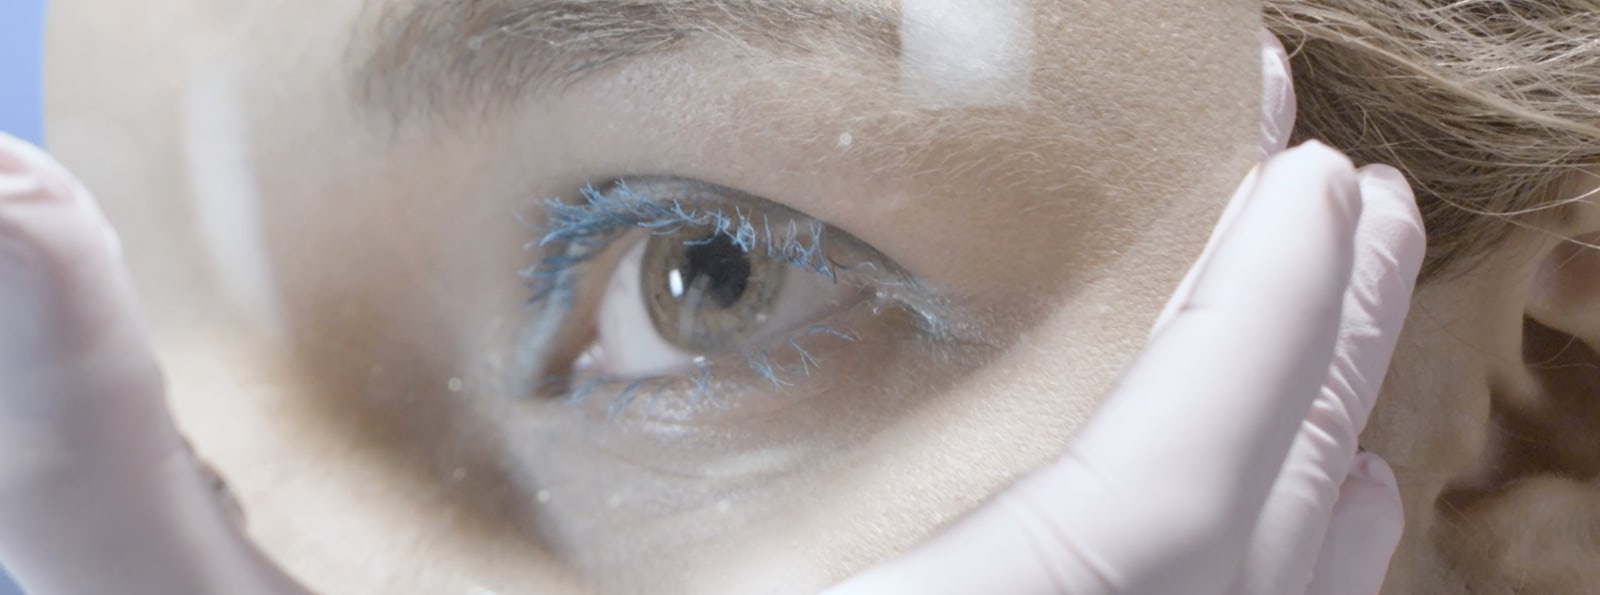 Detail of a young woman's eye with make up looking through a magnification glass.